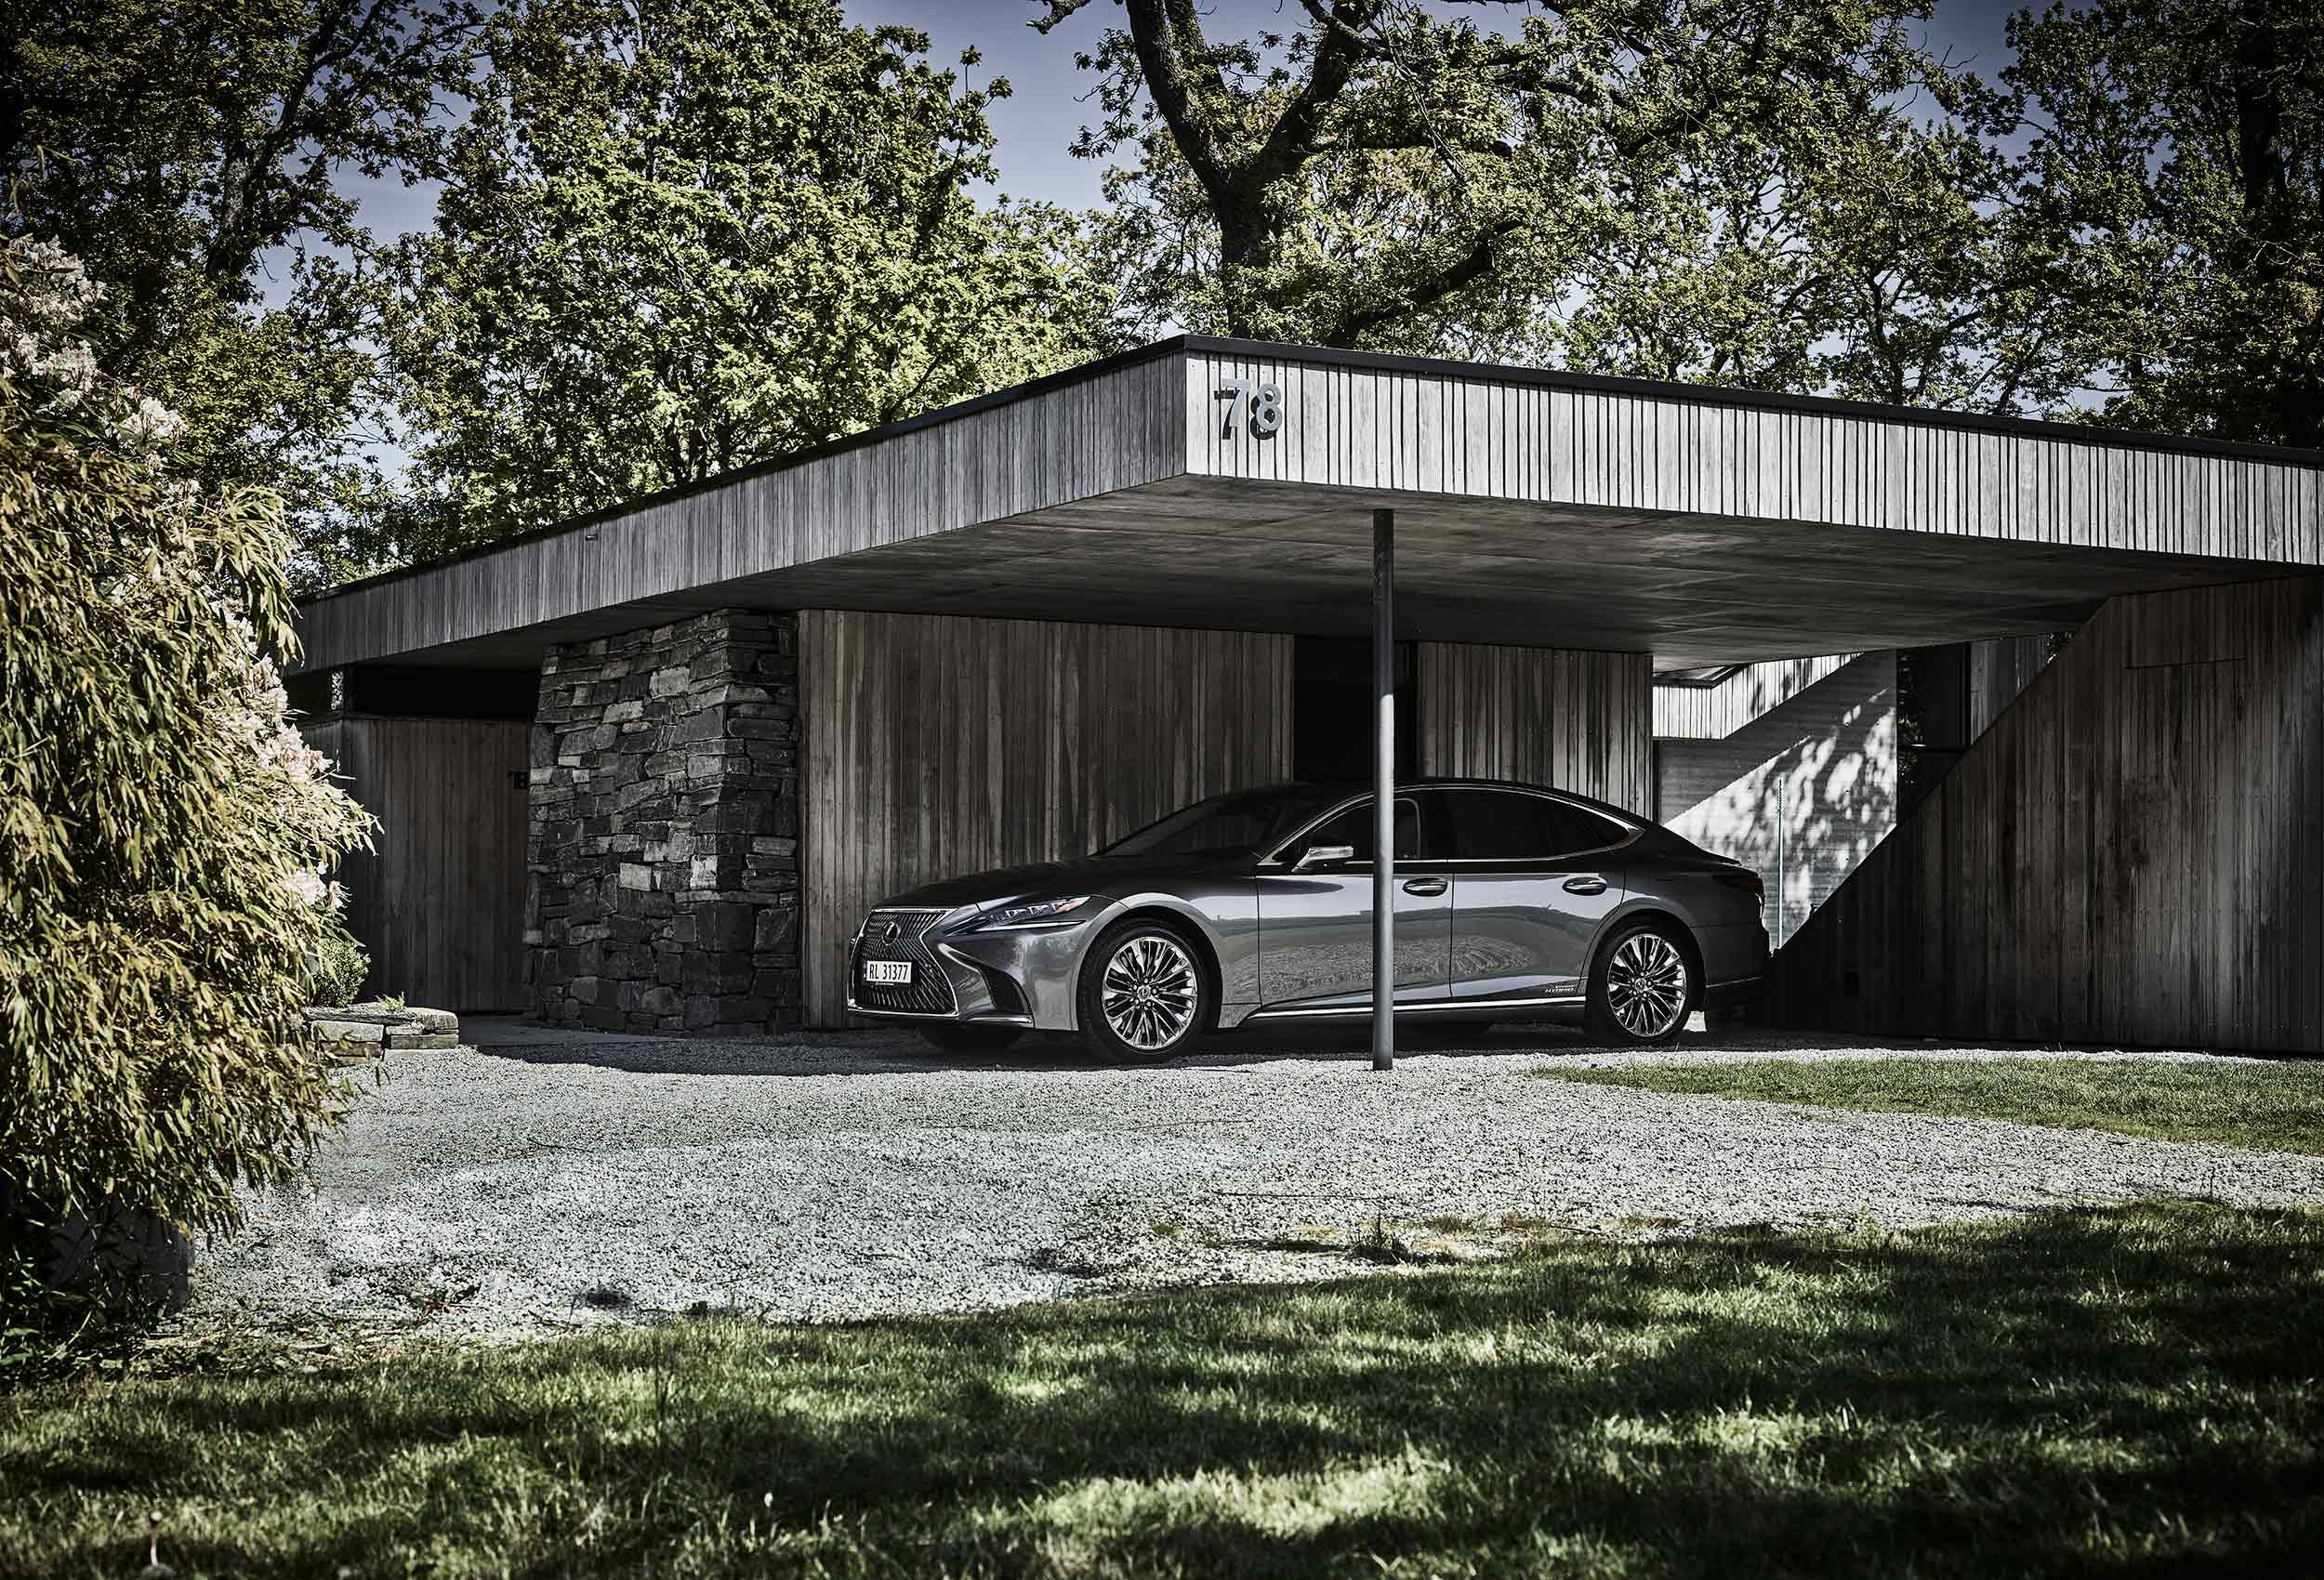 Lexus LS carphotography by Tom Haga